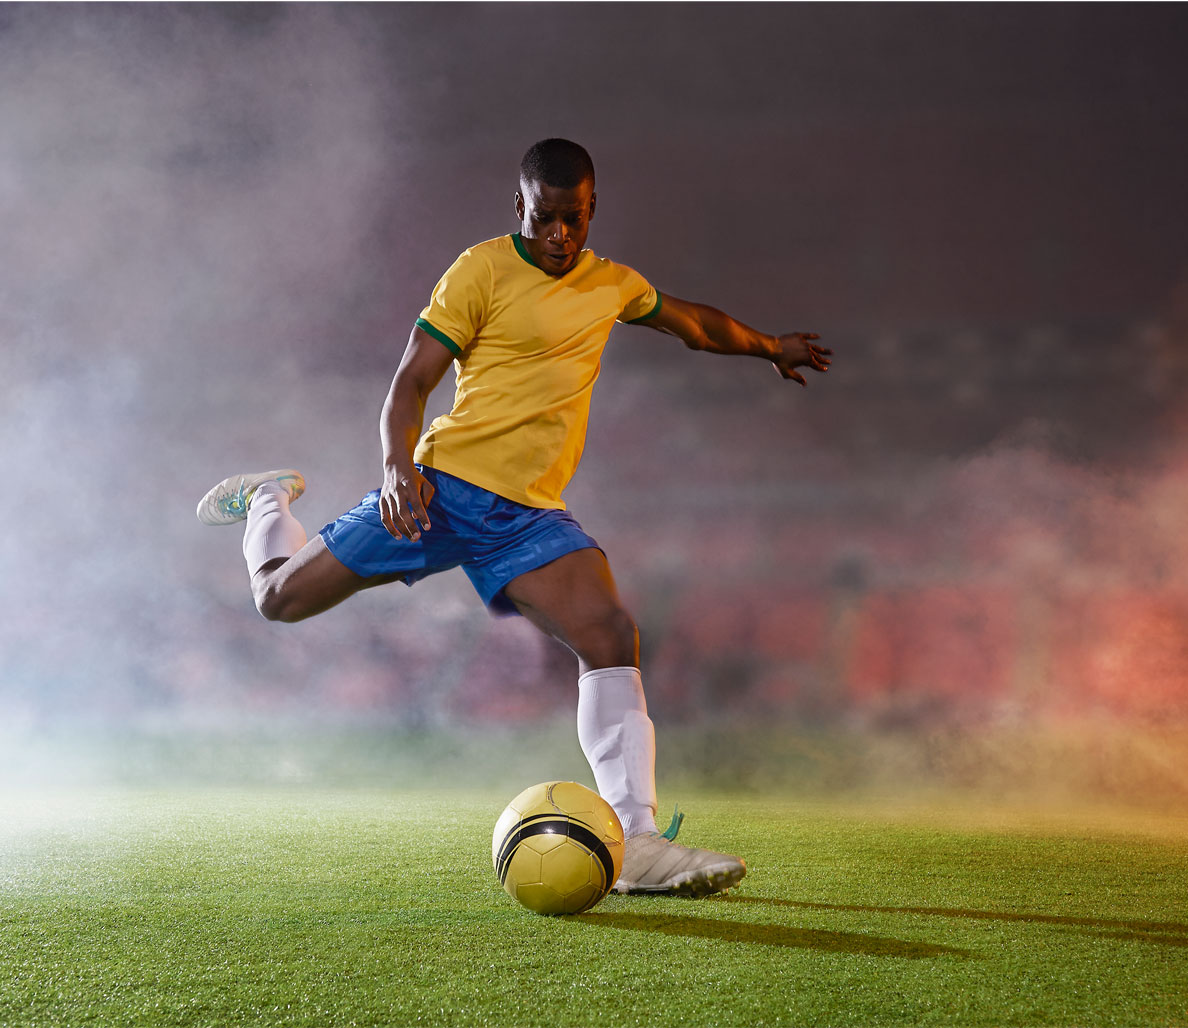 Sports Guide: The Soccer Performance Workout